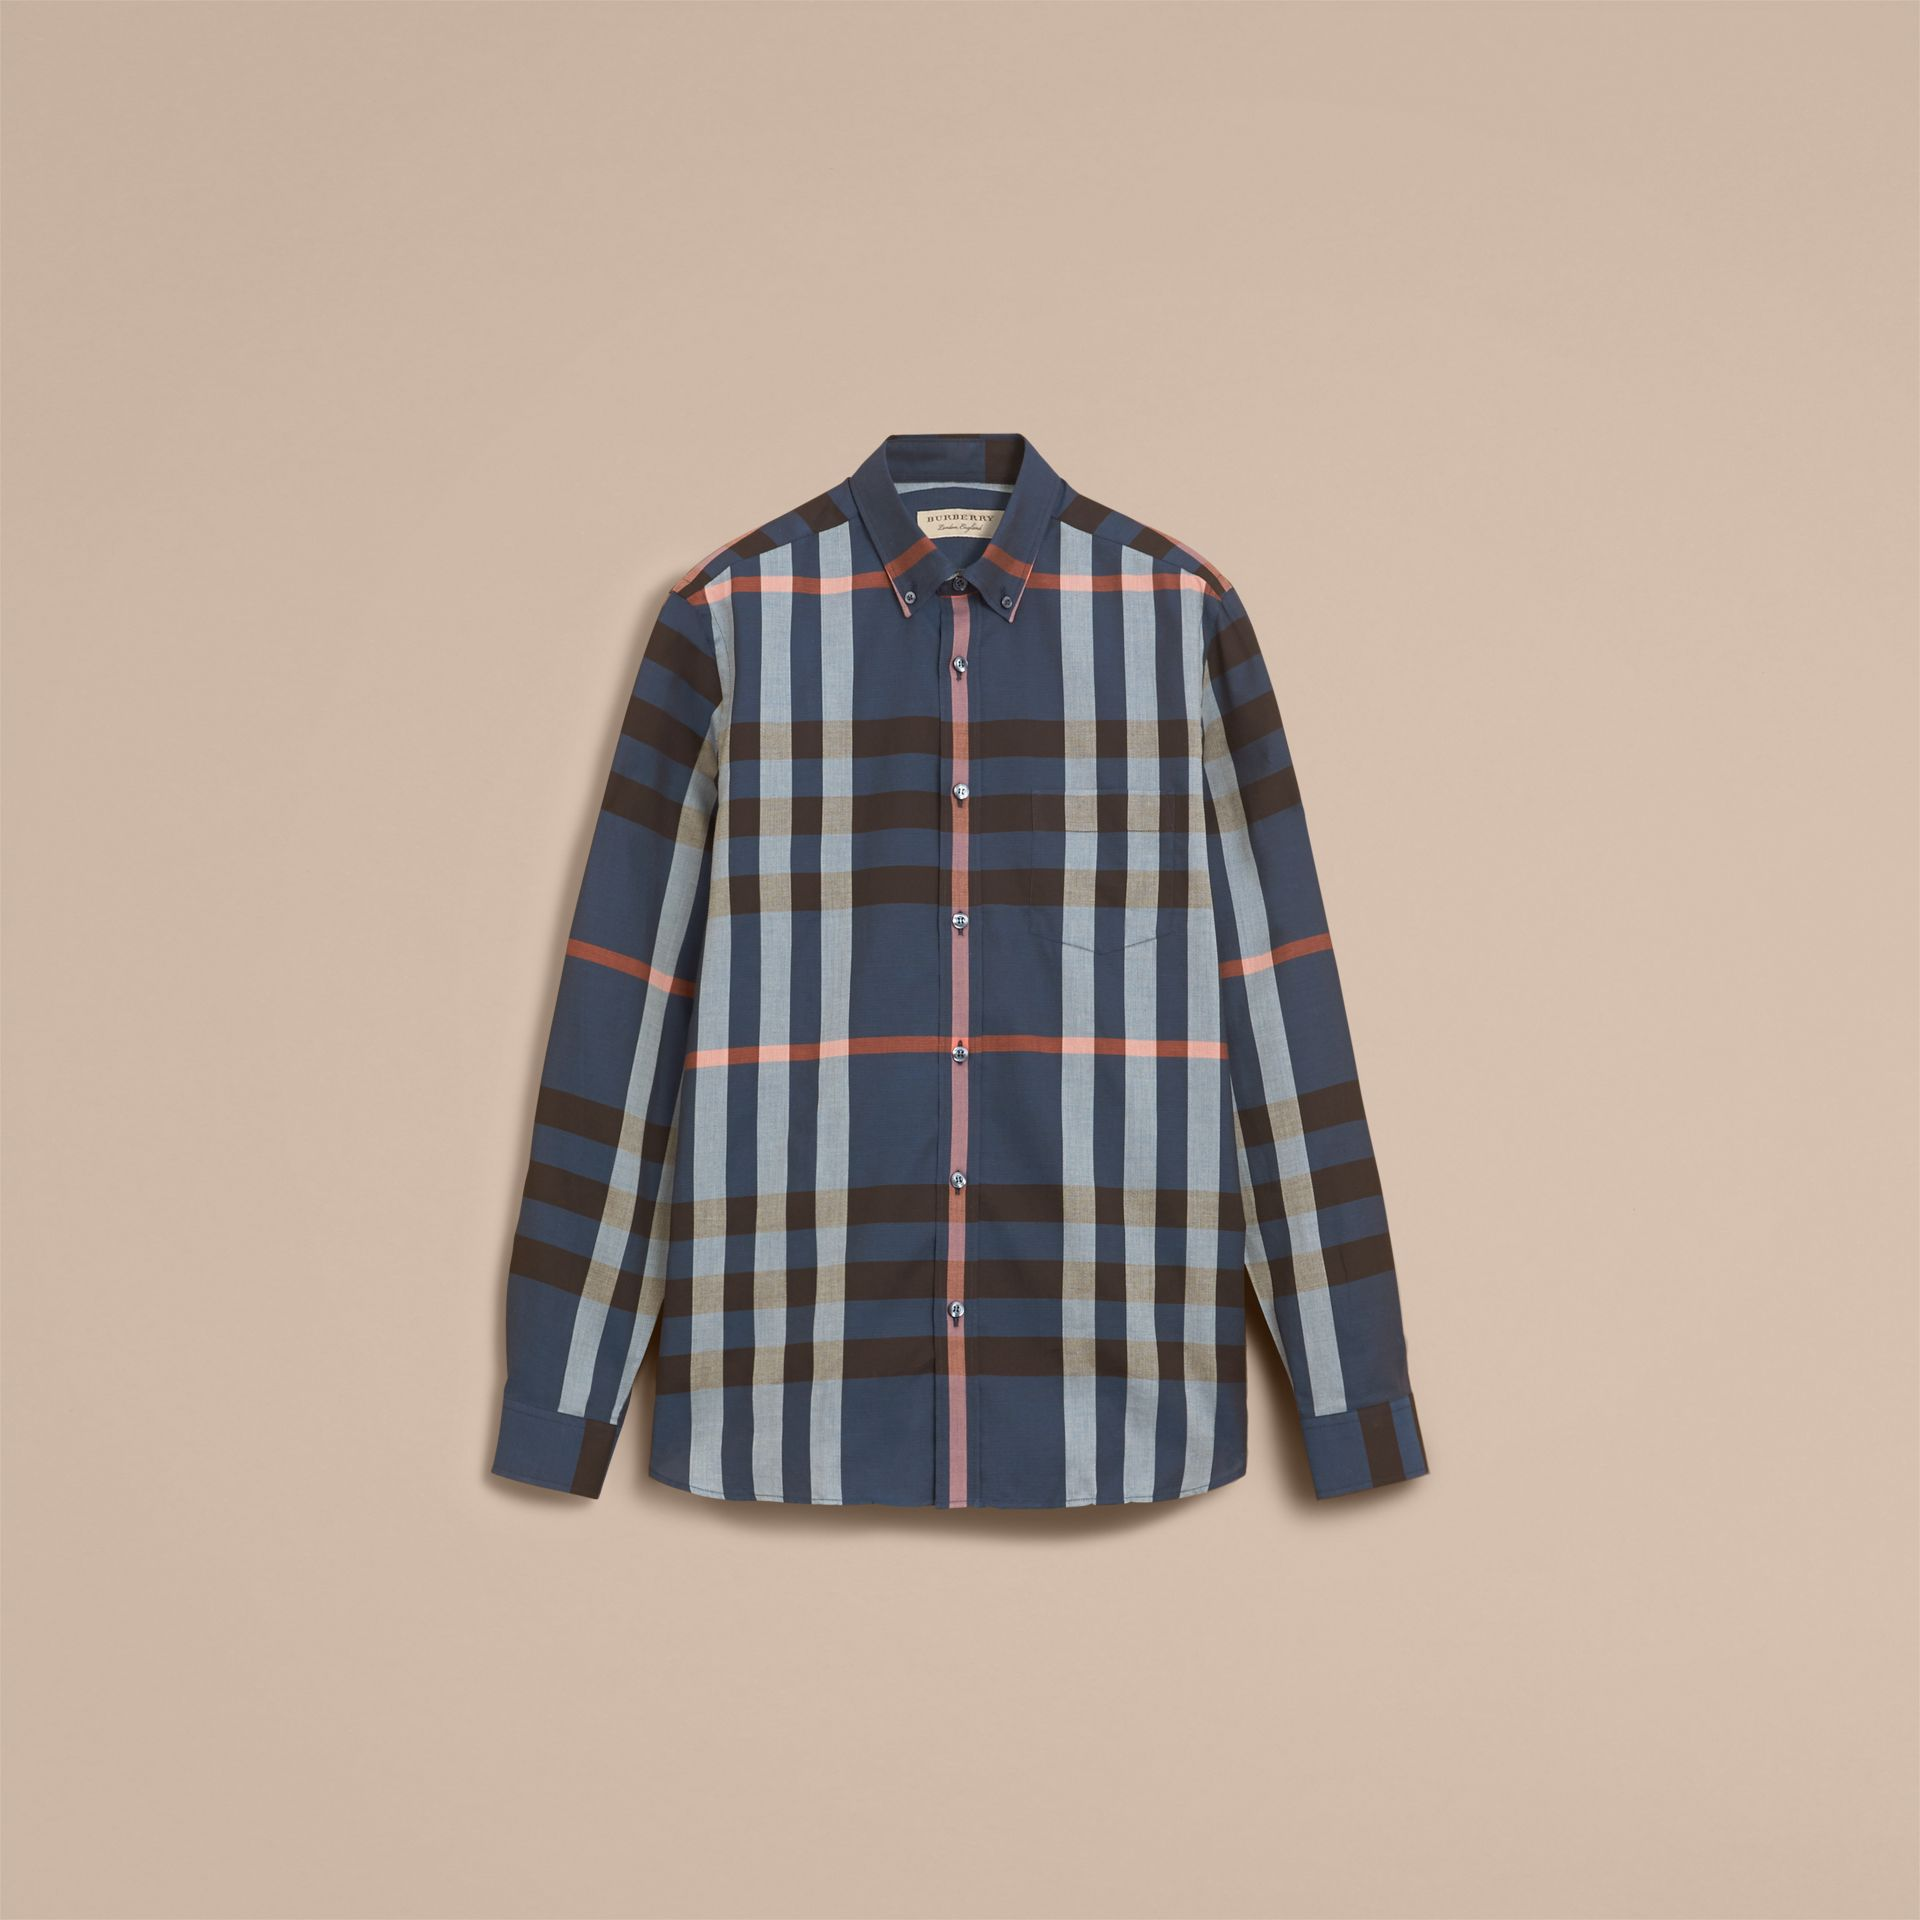 Button-down Collar Check Cotton Poplin Shirt in Ink Blue - Men | Burberry - gallery image 4